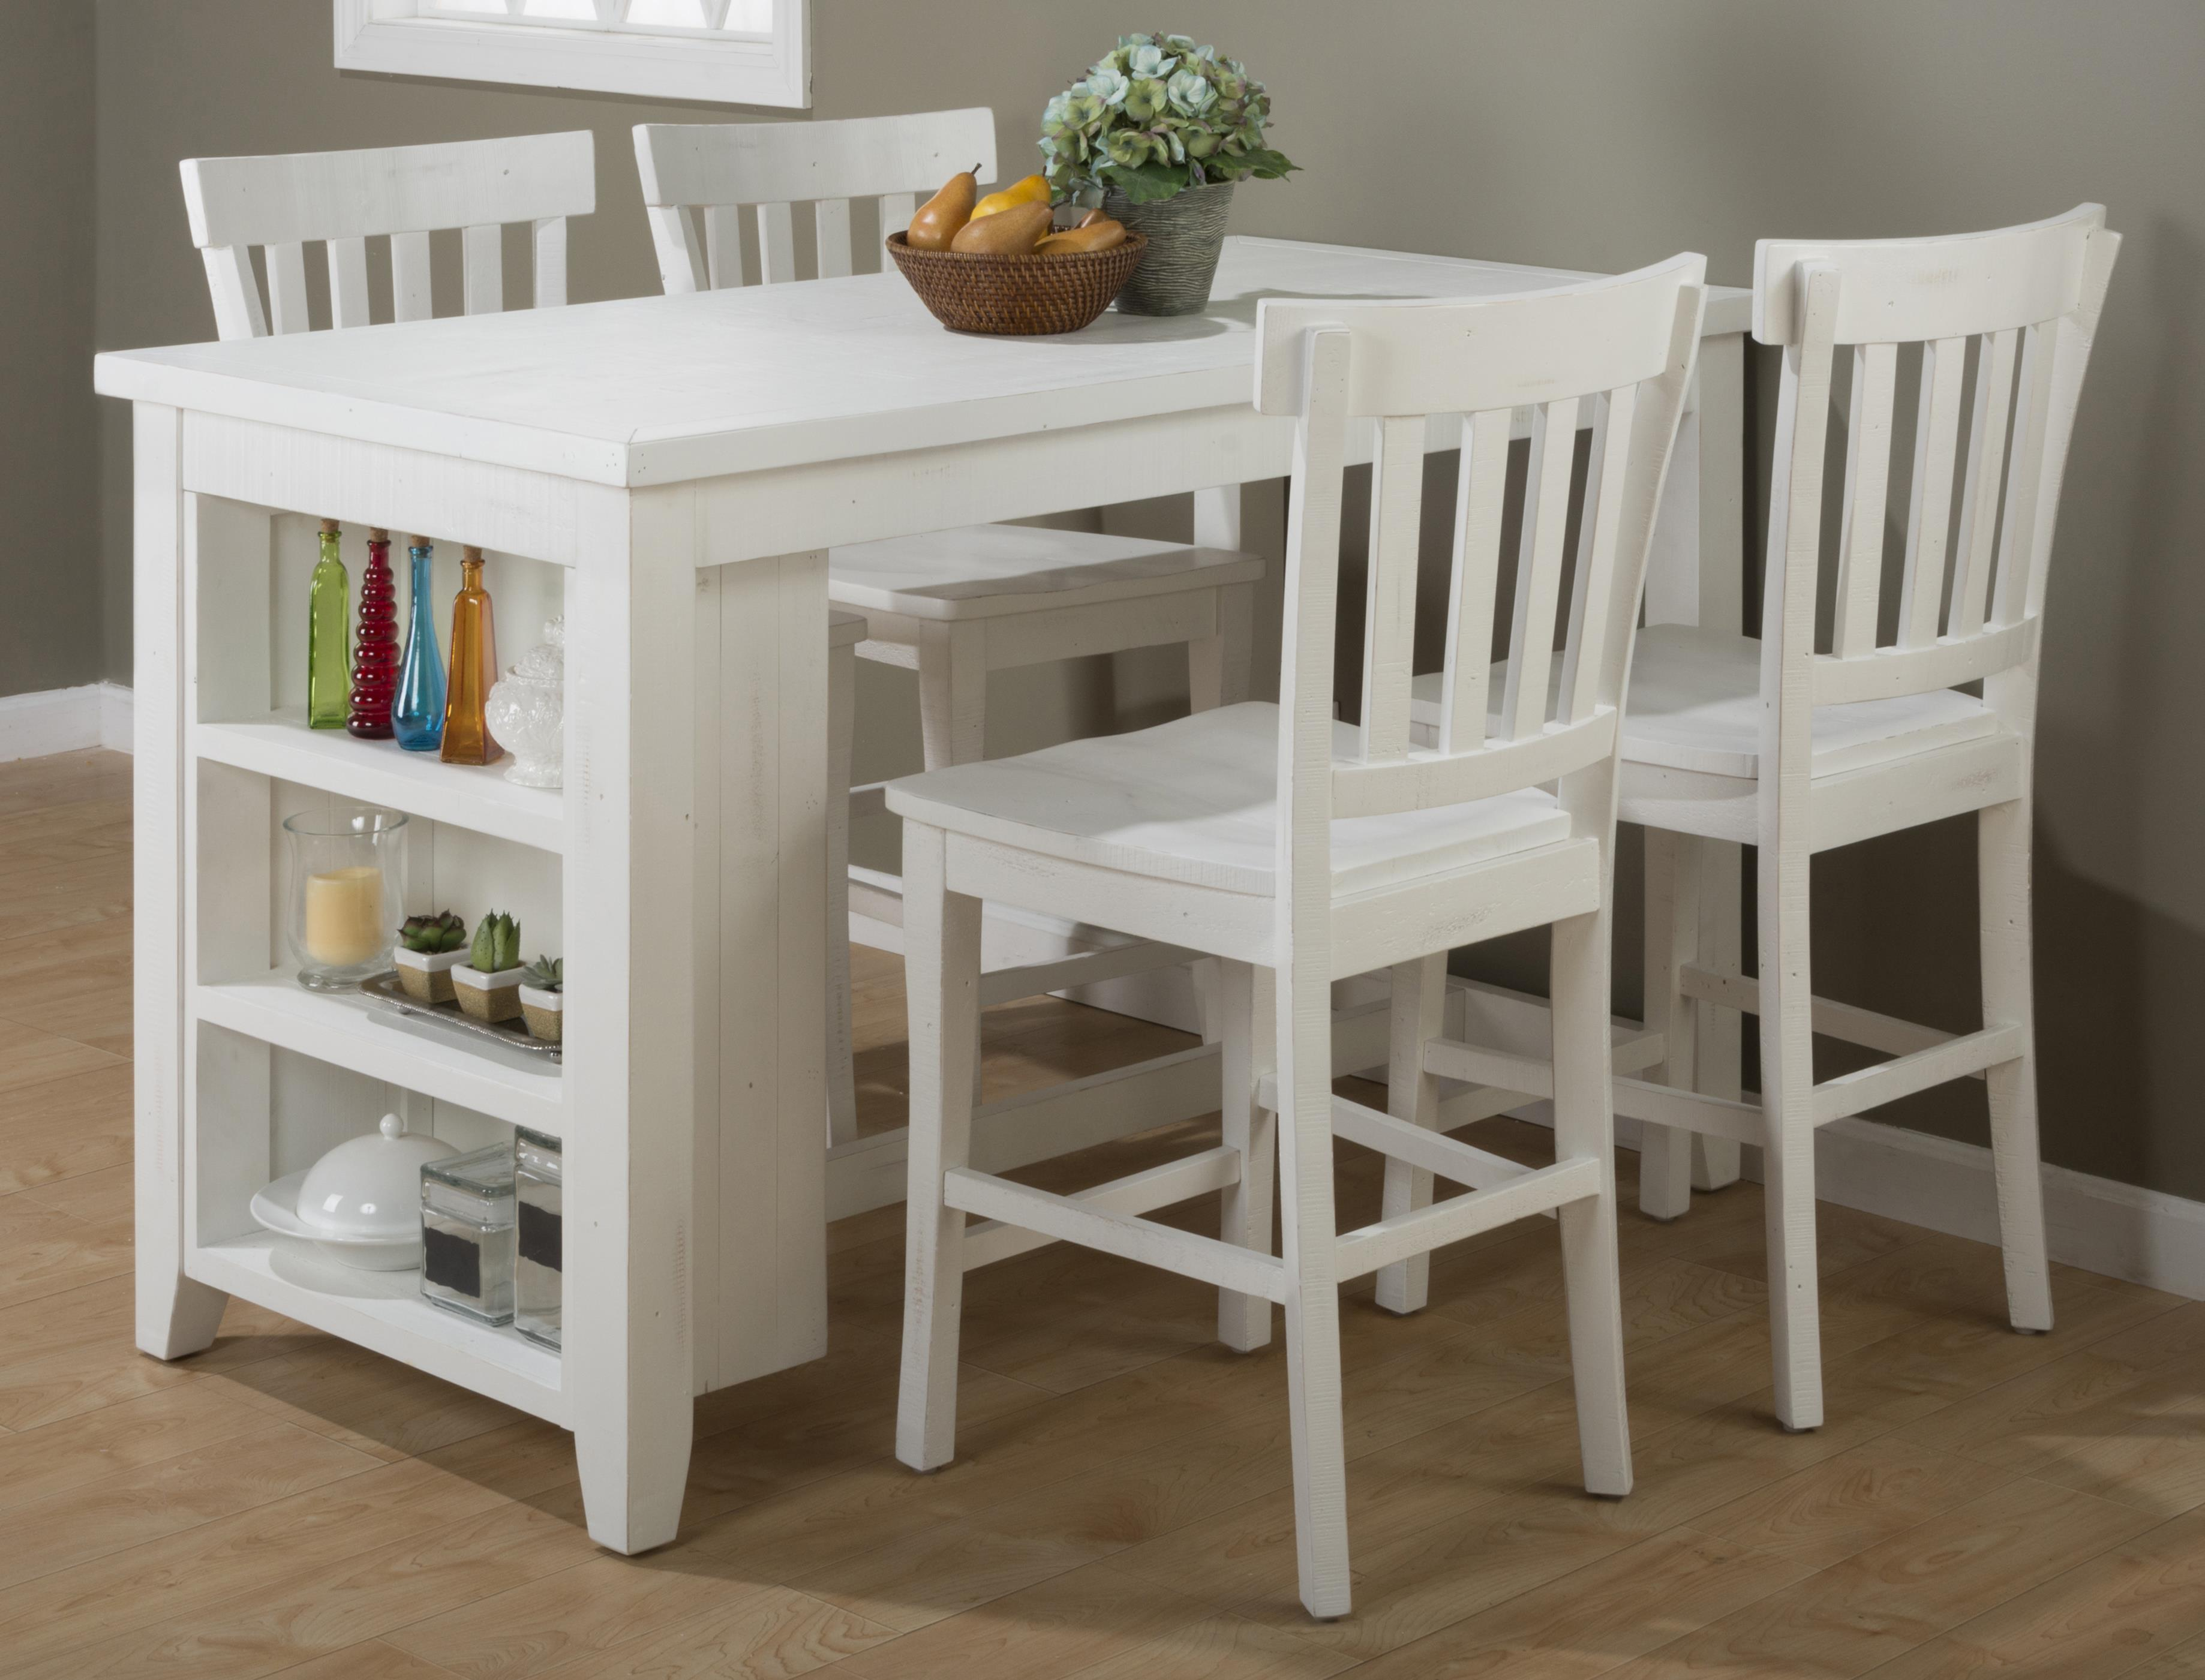 Madaket Reclaimed Pine Counter Height Table Set With 3 Shelf Storage Belfor